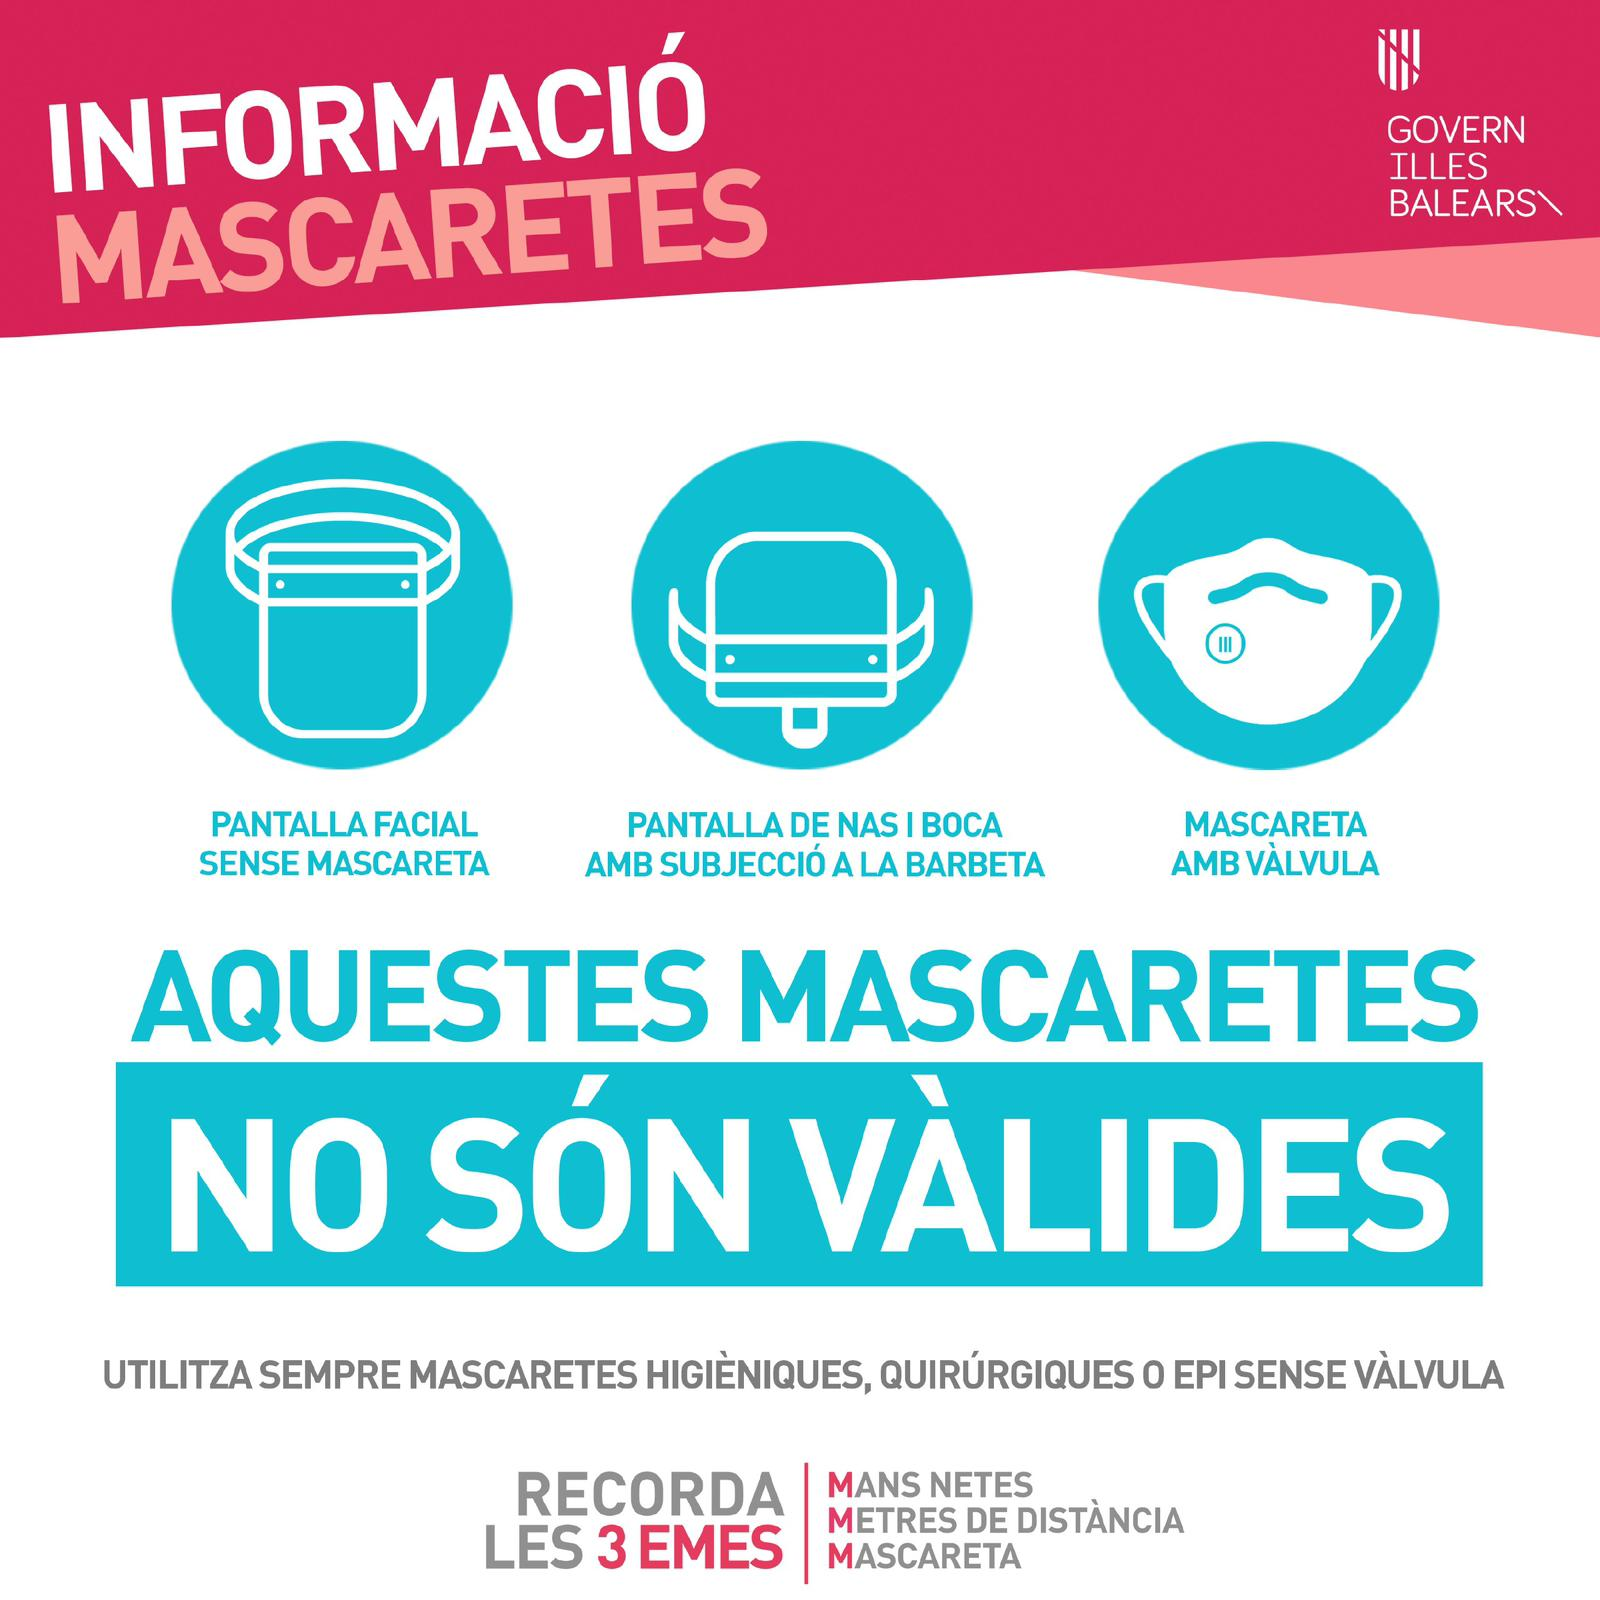 ESTAS MASCARILLAS NO SON VÁLIDAS